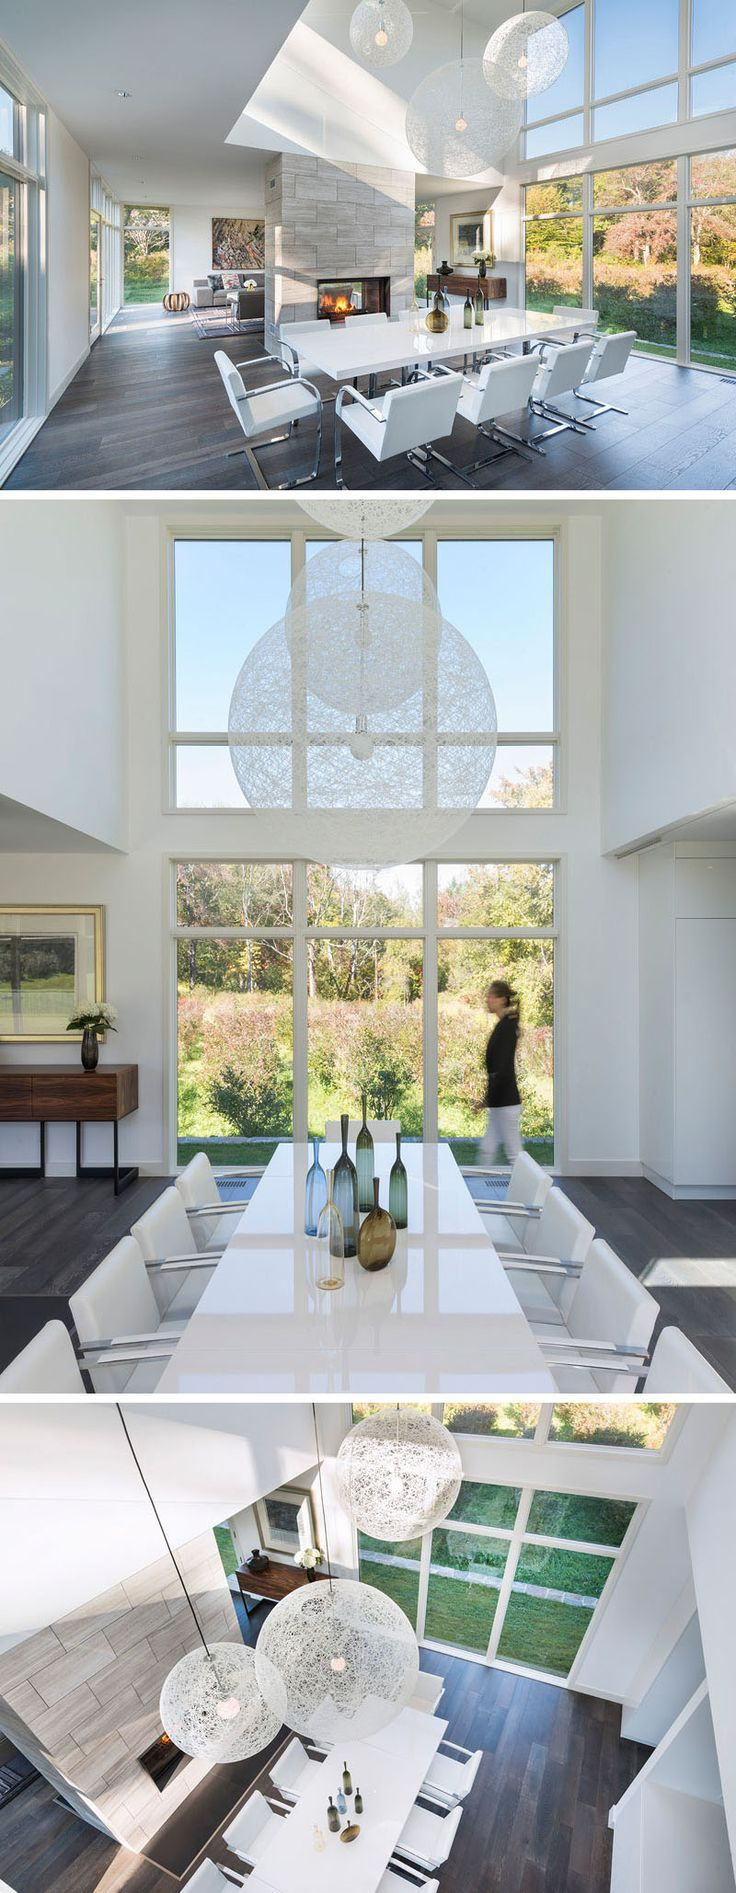 In this modern dining area, three large white pendant lights hang from the double height ceiling in front of floor-to-ceiling windows. A light grey tiled fireplace behind the white dining table separate this space from the living room.